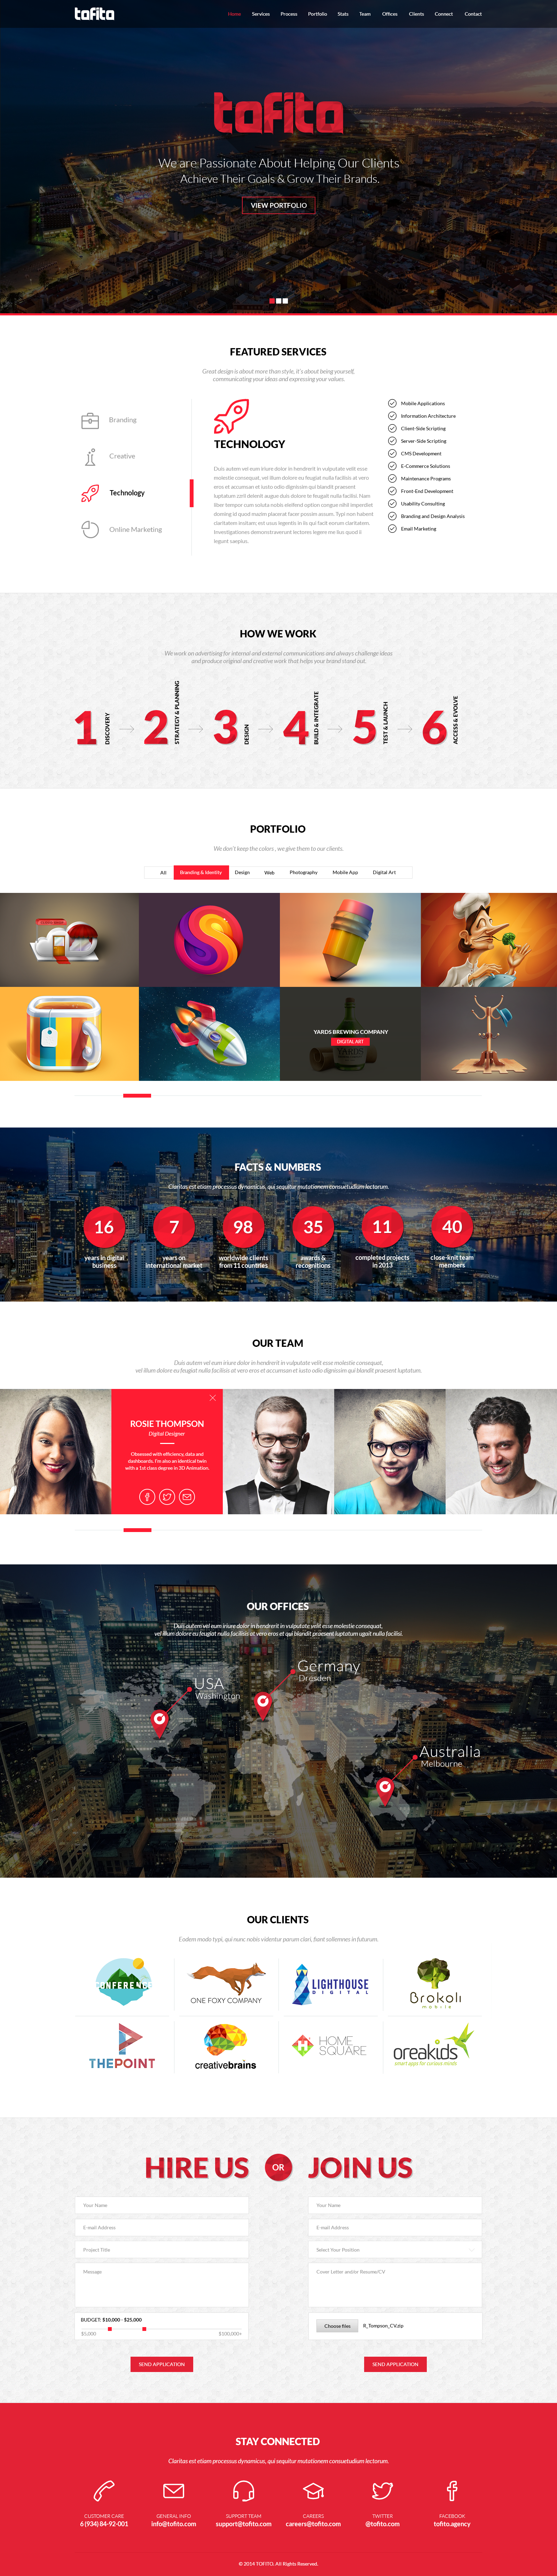 Tofito responsive one page html5 template by bareve themeforest tofito preview images set02tofito one page psdg pronofoot35fo Gallery